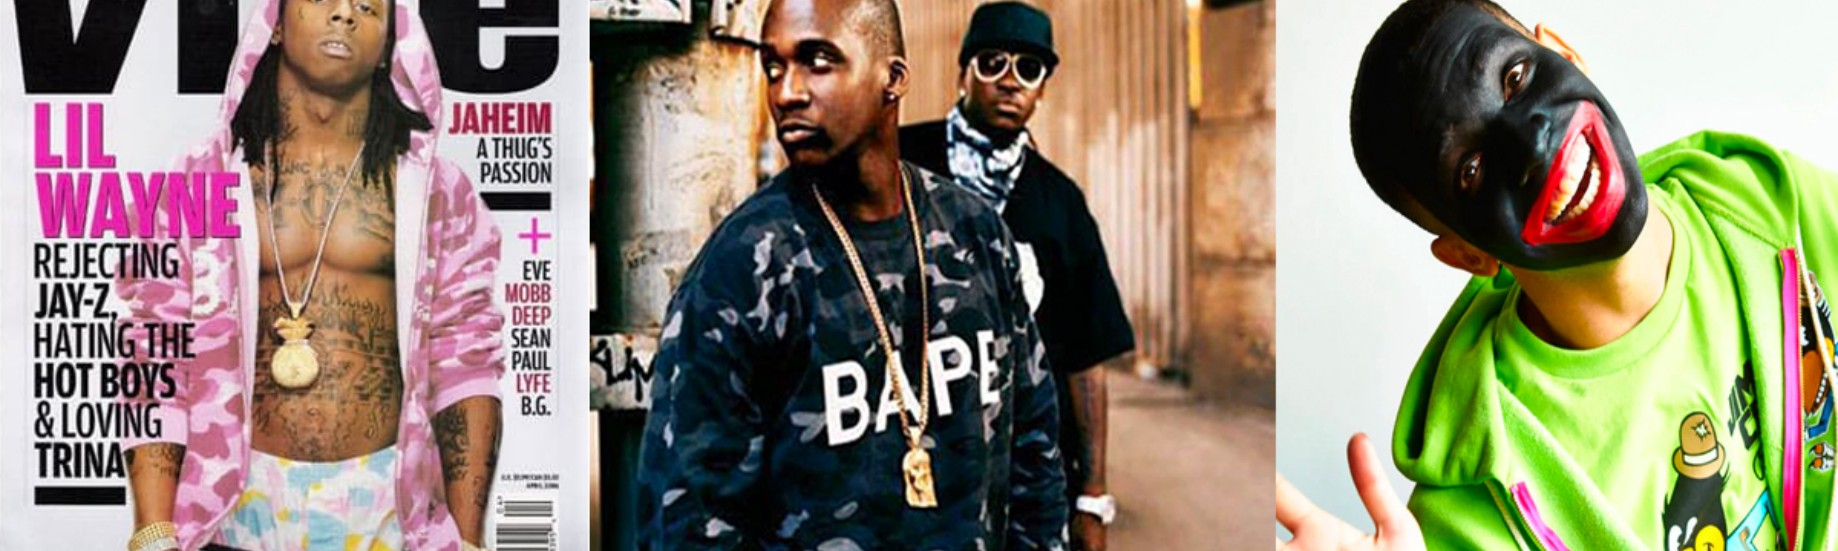 What Happened To That Boy How Bape Started The Greatest Rap Feud